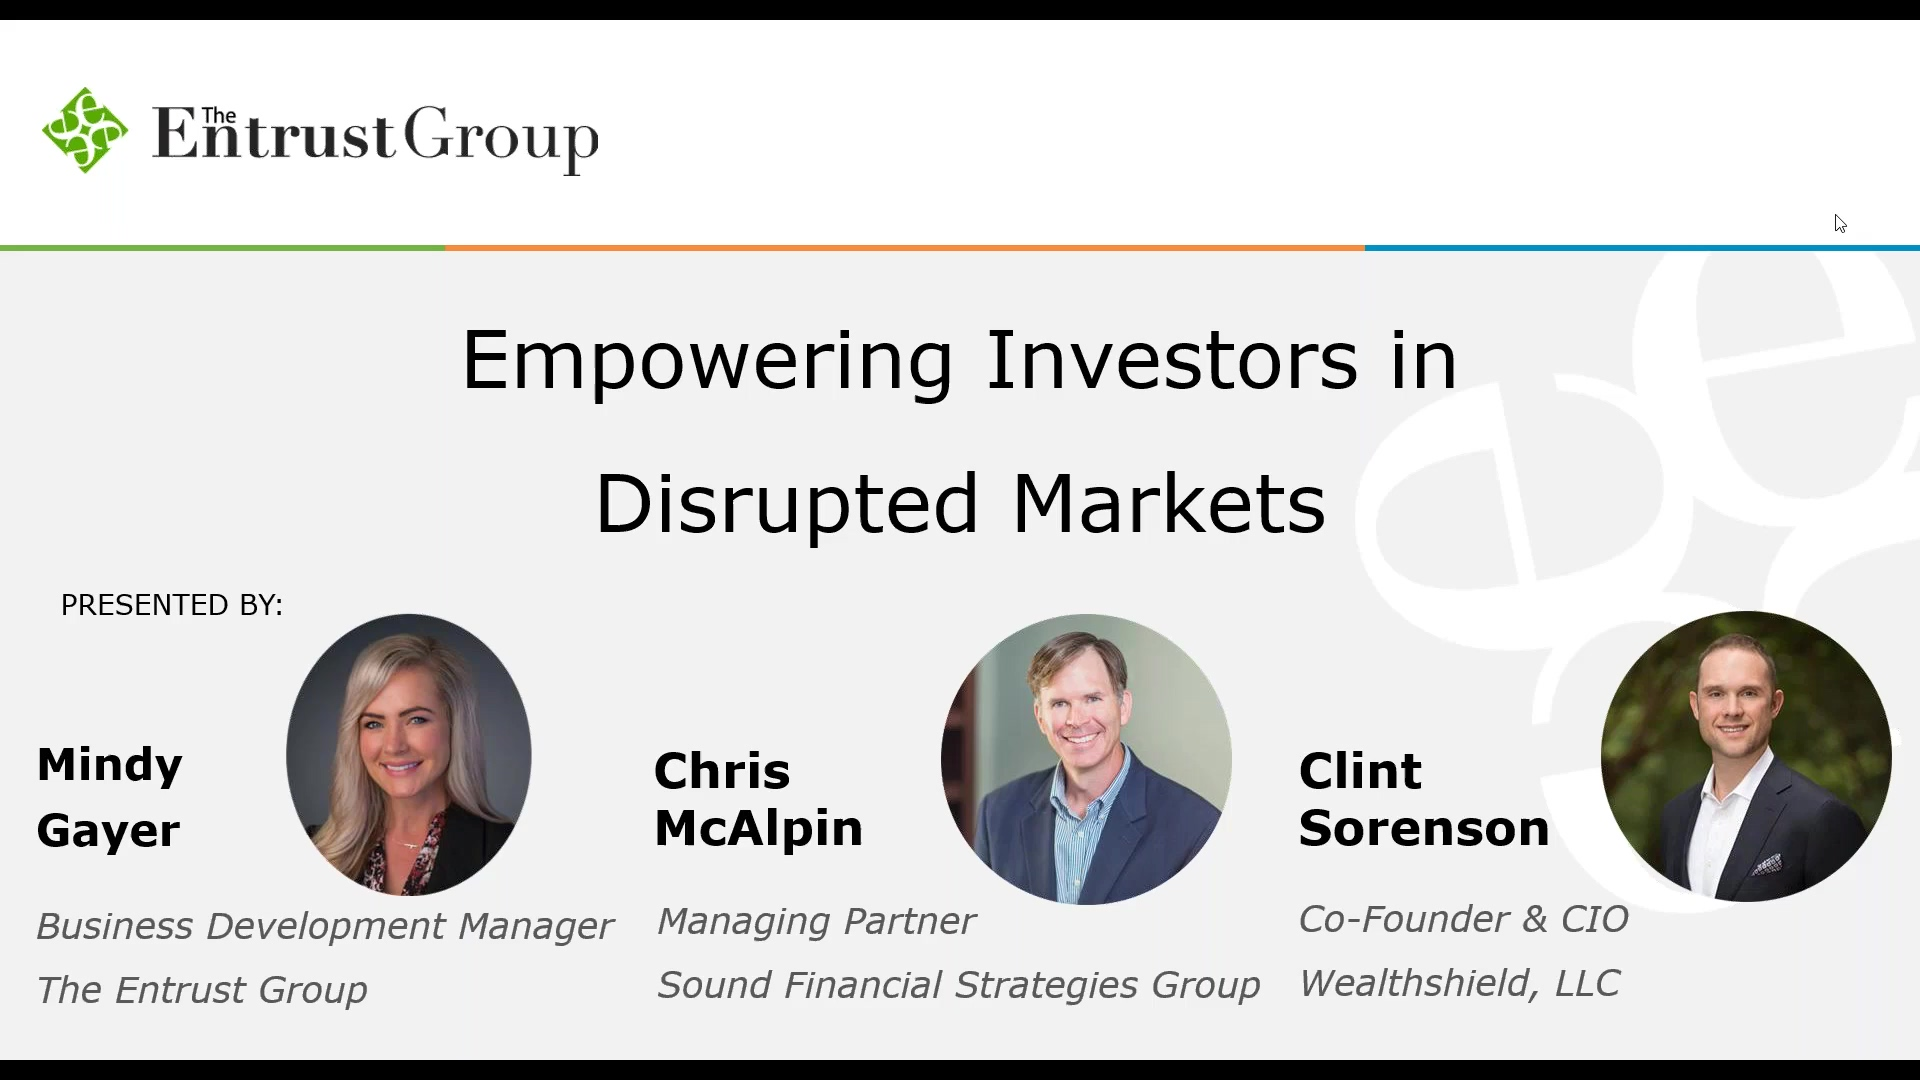 Empowering Investors in Disrupted Markets